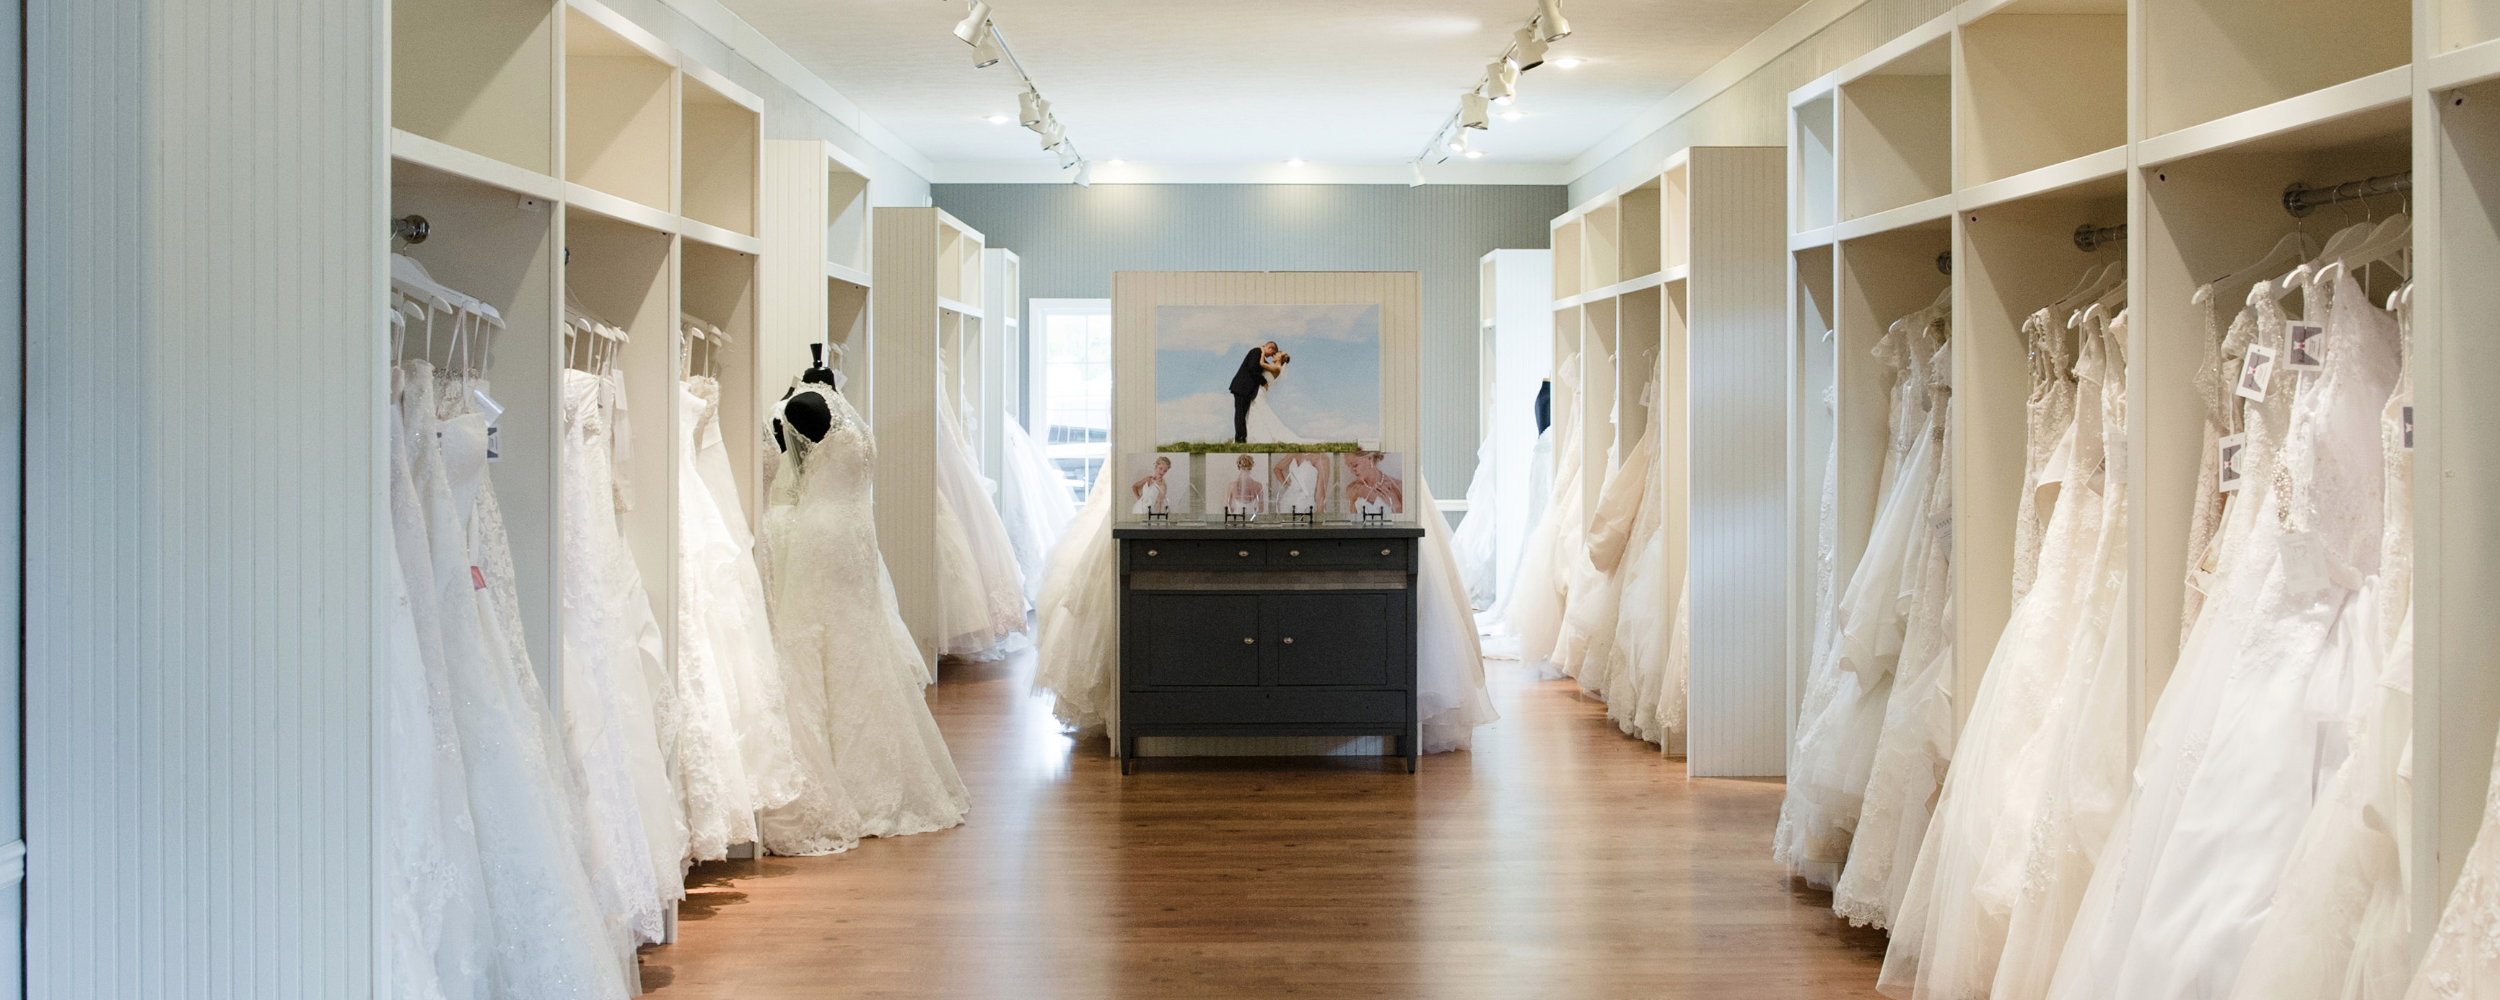 Shoptiques Boutique: Brides & Beyond